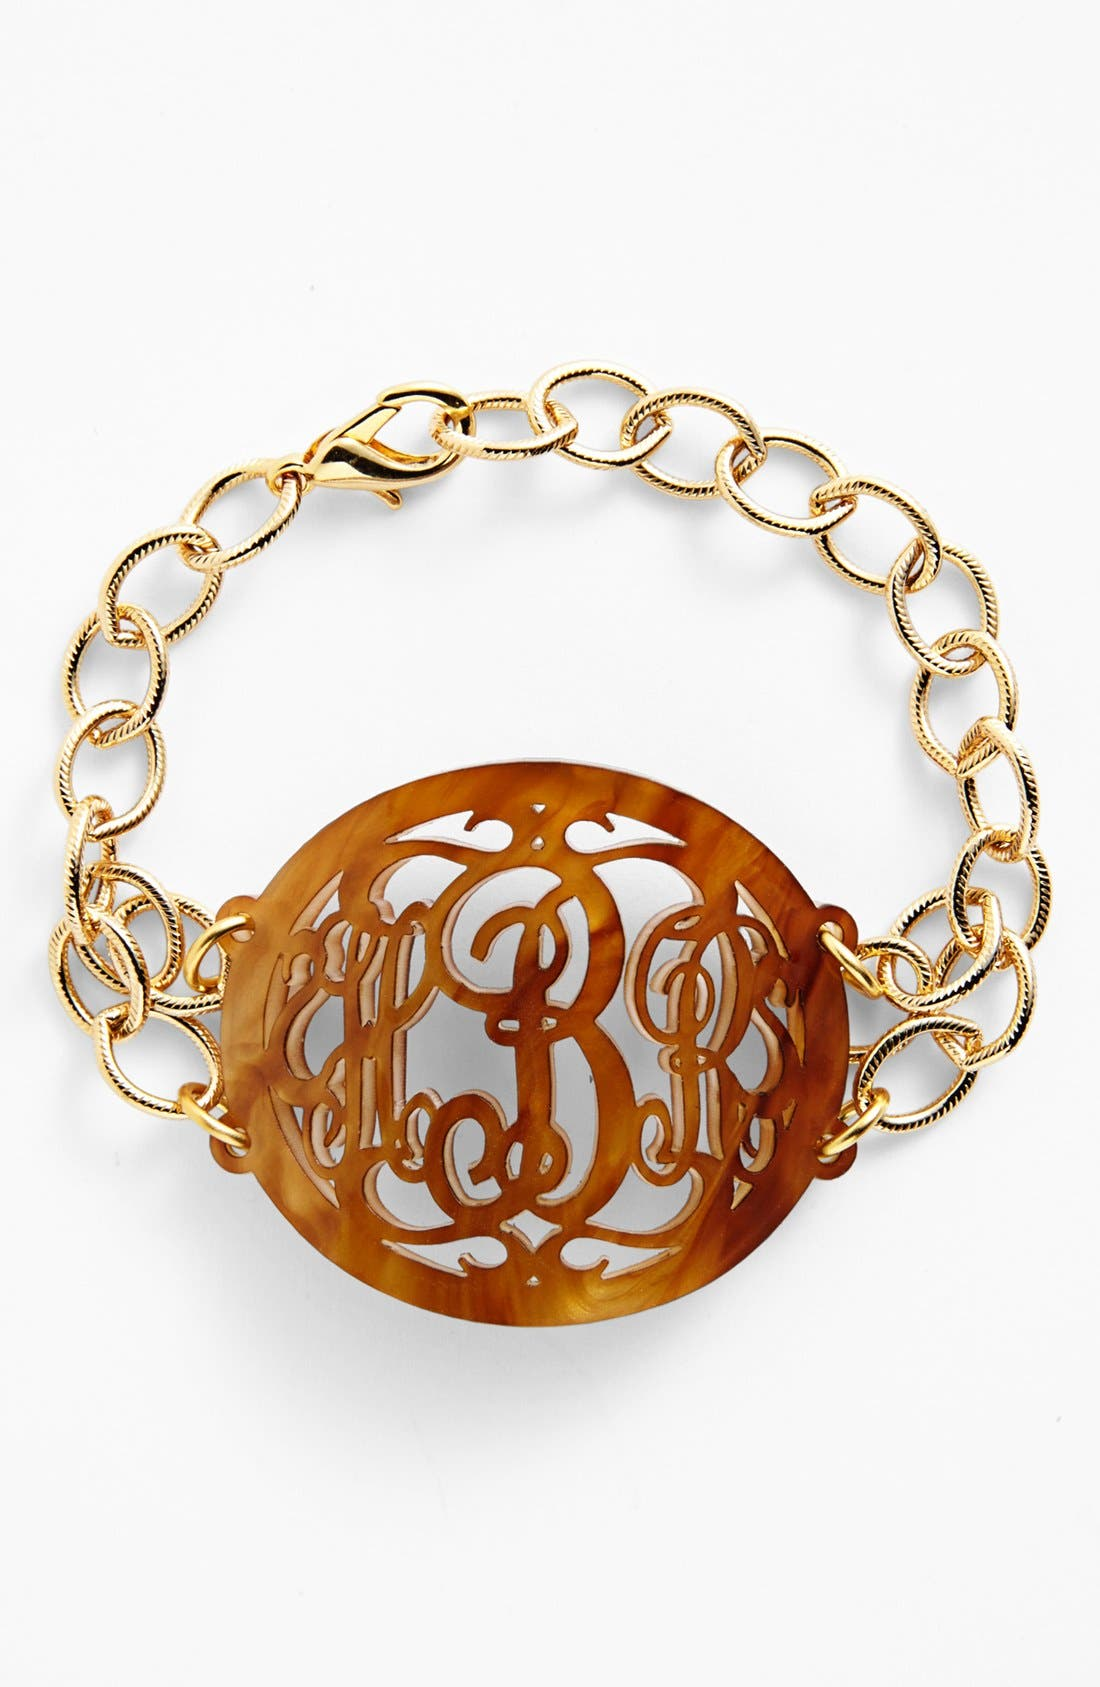 'Annabel' Large Oval Personalized Monogram Bracelet,                             Main thumbnail 1, color,                             Tigers Eye/ Gold